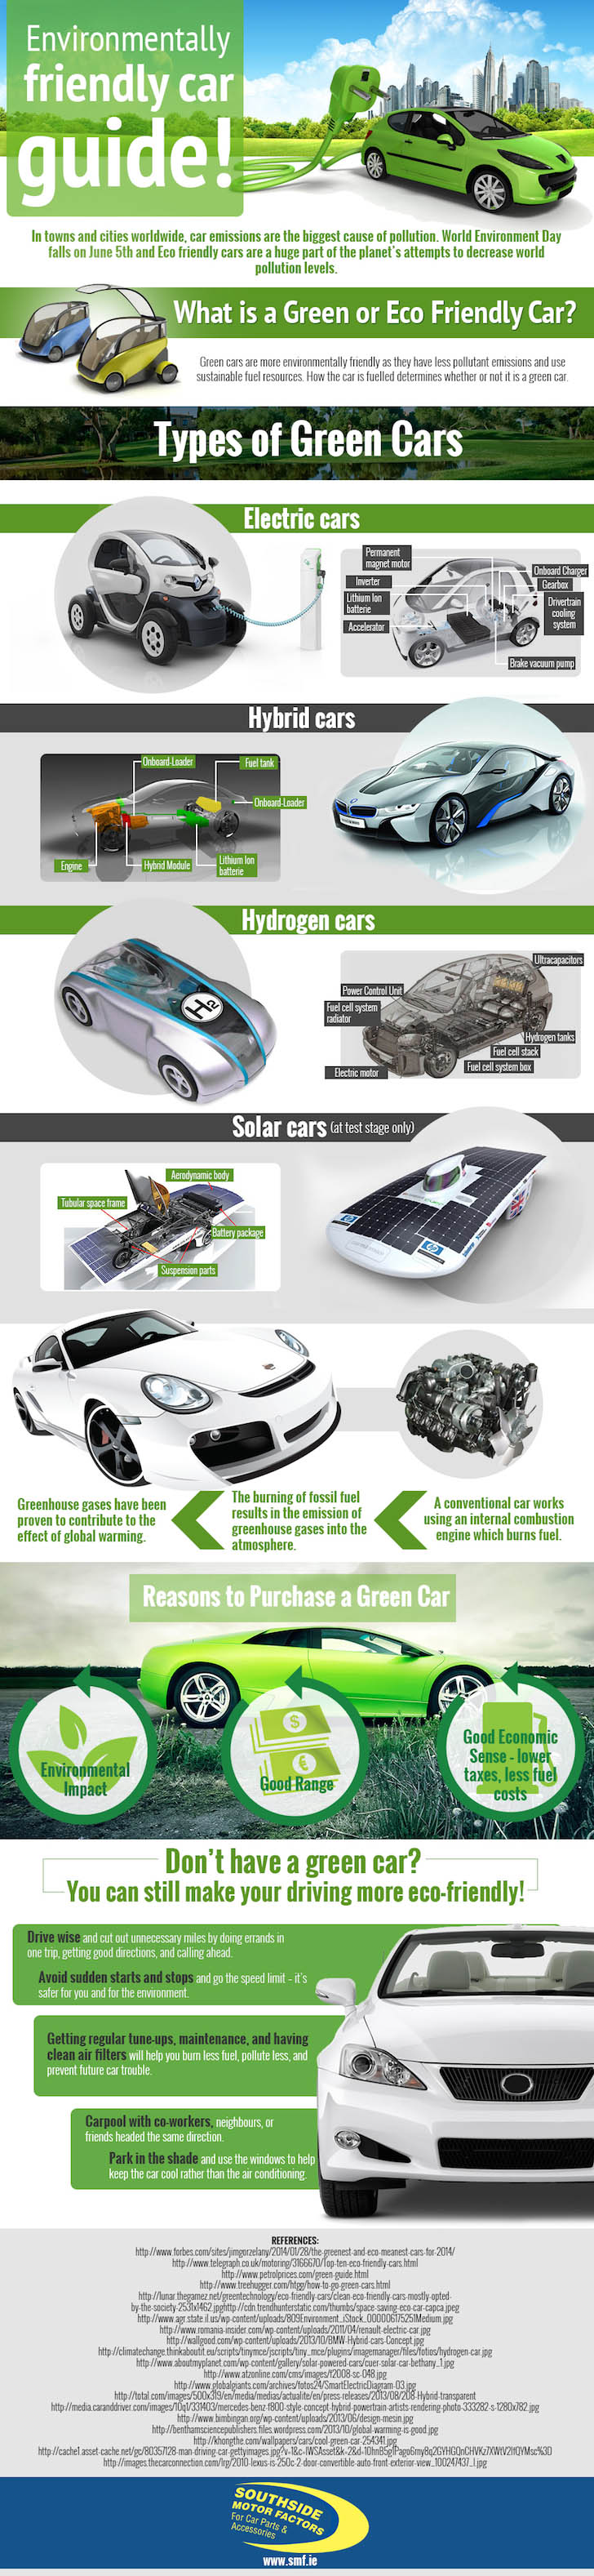 infographic, green cars, green transportation, hydrogen vehicles, hybrid vehicles, electric vehicles, greenhouse gas emissions, car pollution, conventional cars, Tesla, EVs, electric cars, guide to green cars, guide to environmentally-friendly cars, guide to eco-friendly cars